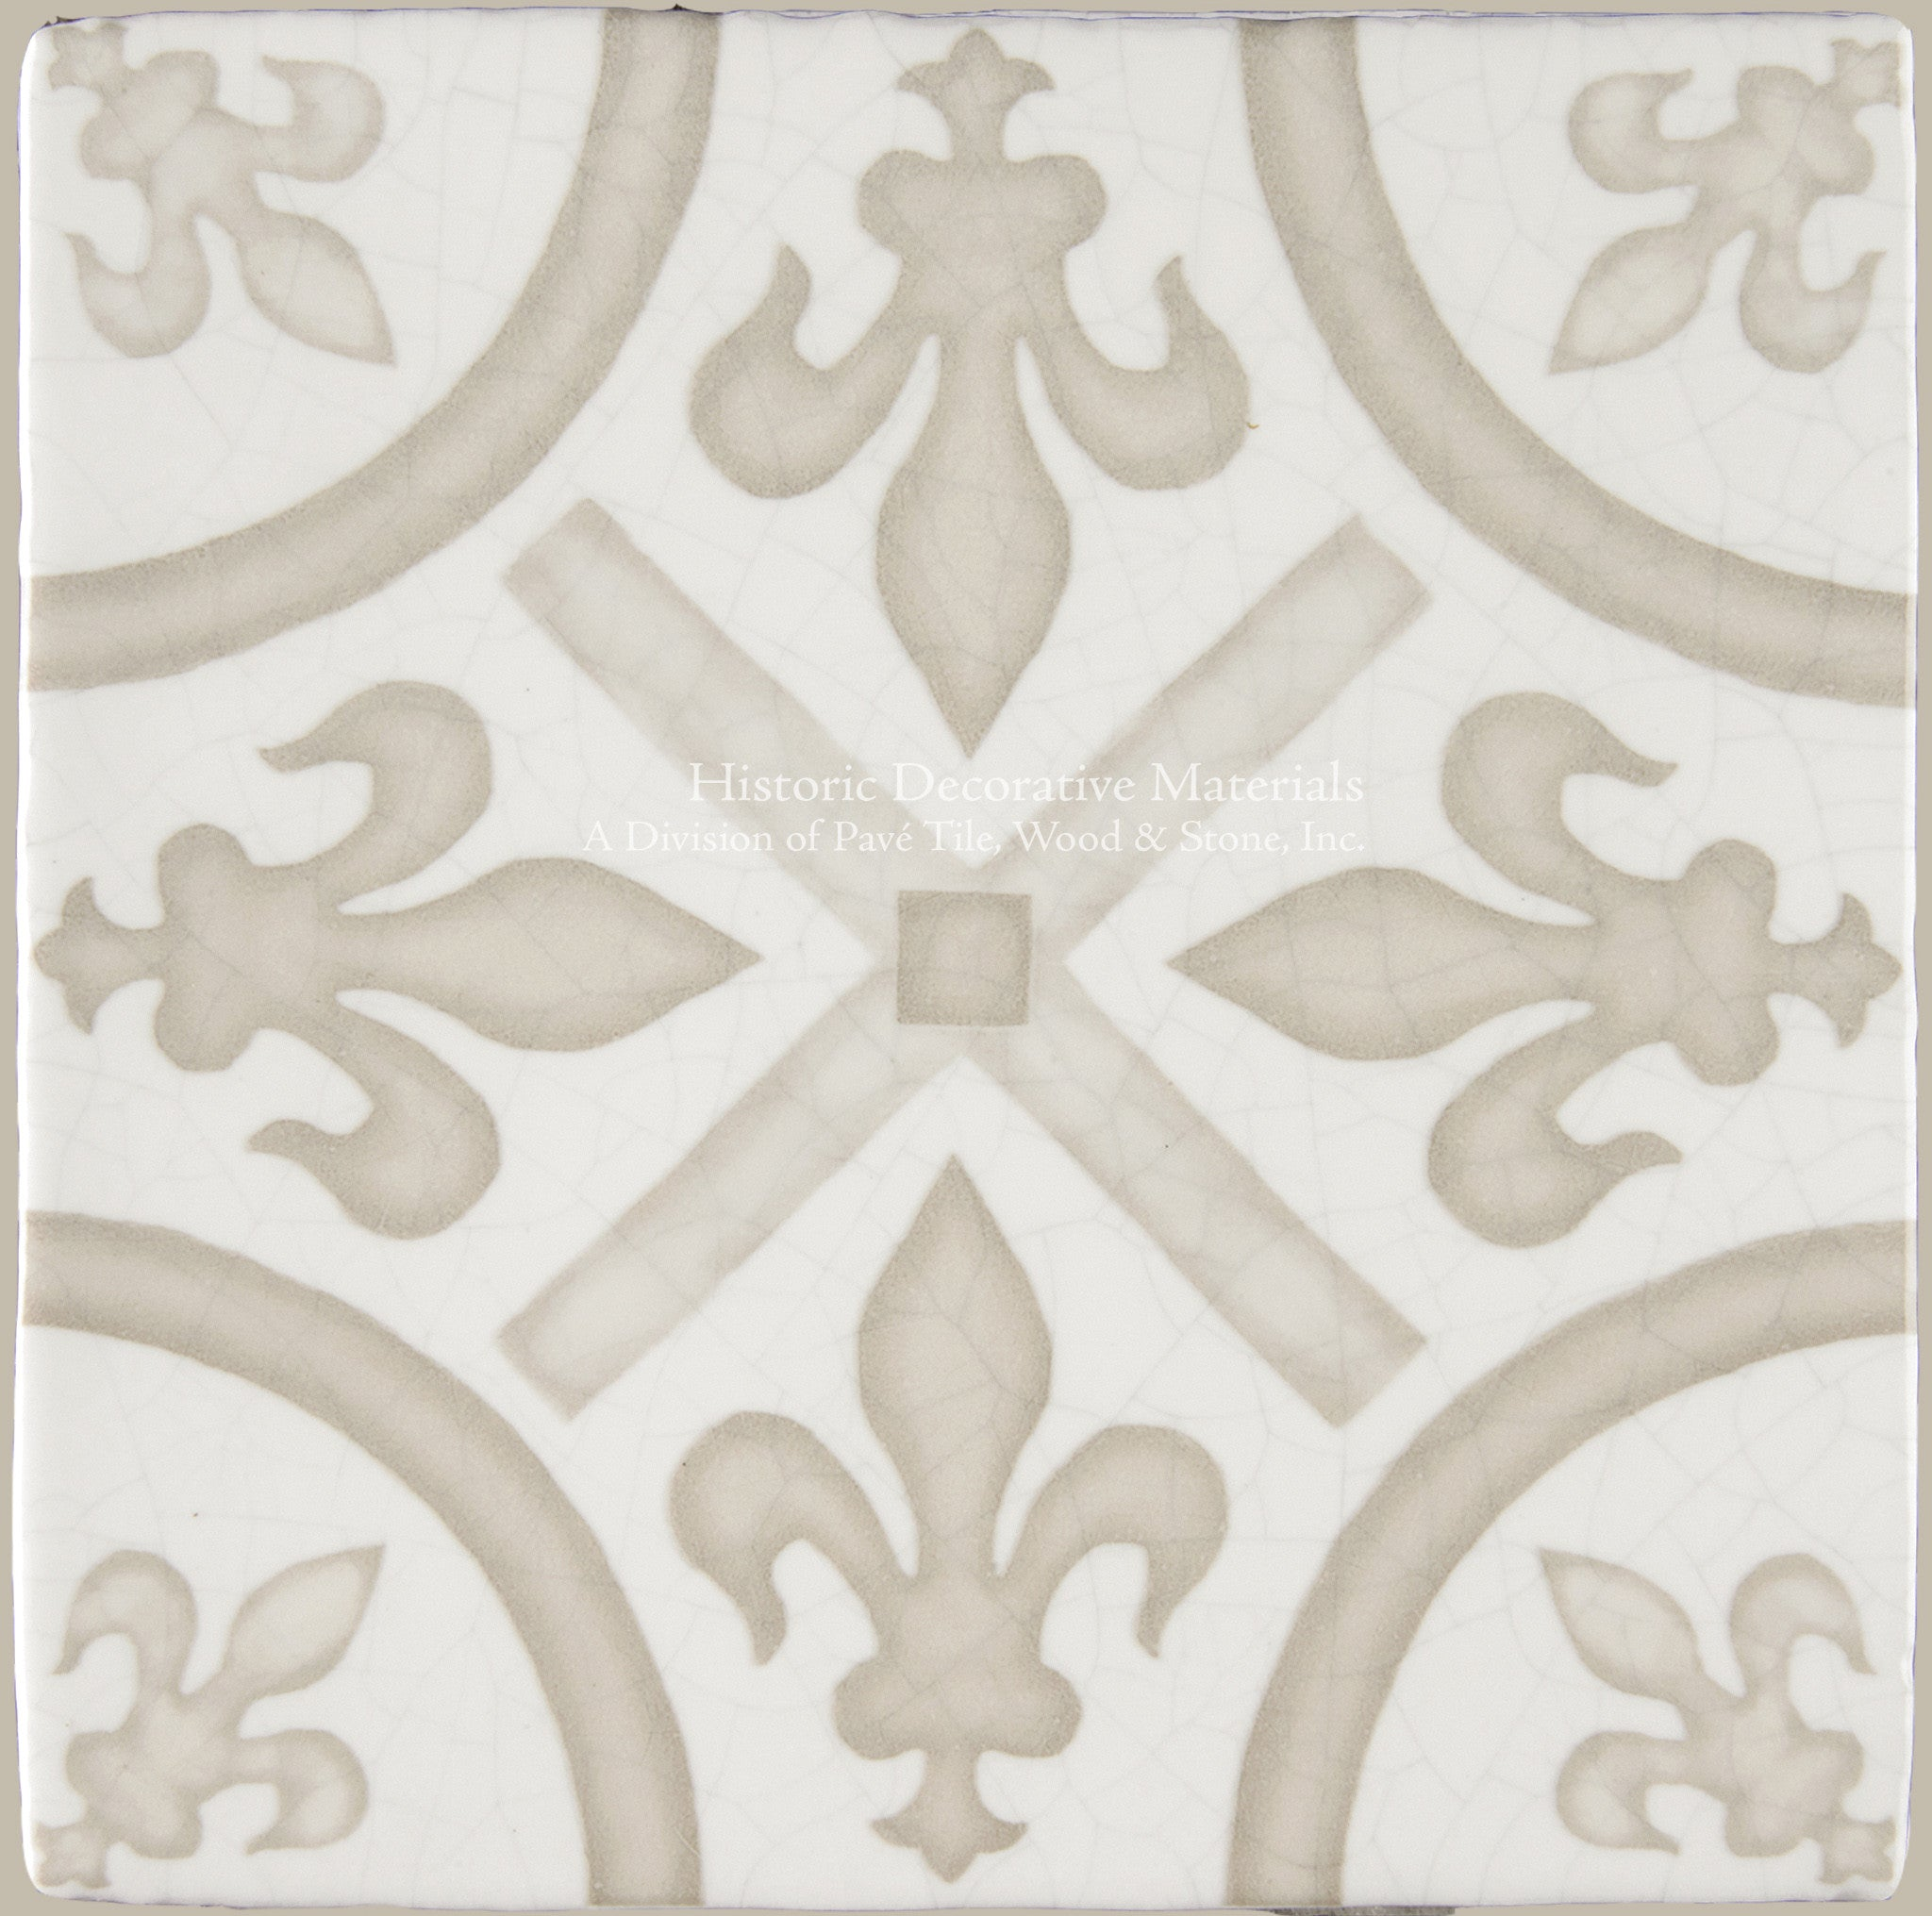 French Decorative Wall Tiles For Kitchen Backsplash And Fireplace Historic Decorative Materials A Division Of Pave Tile Wood Stone Inc